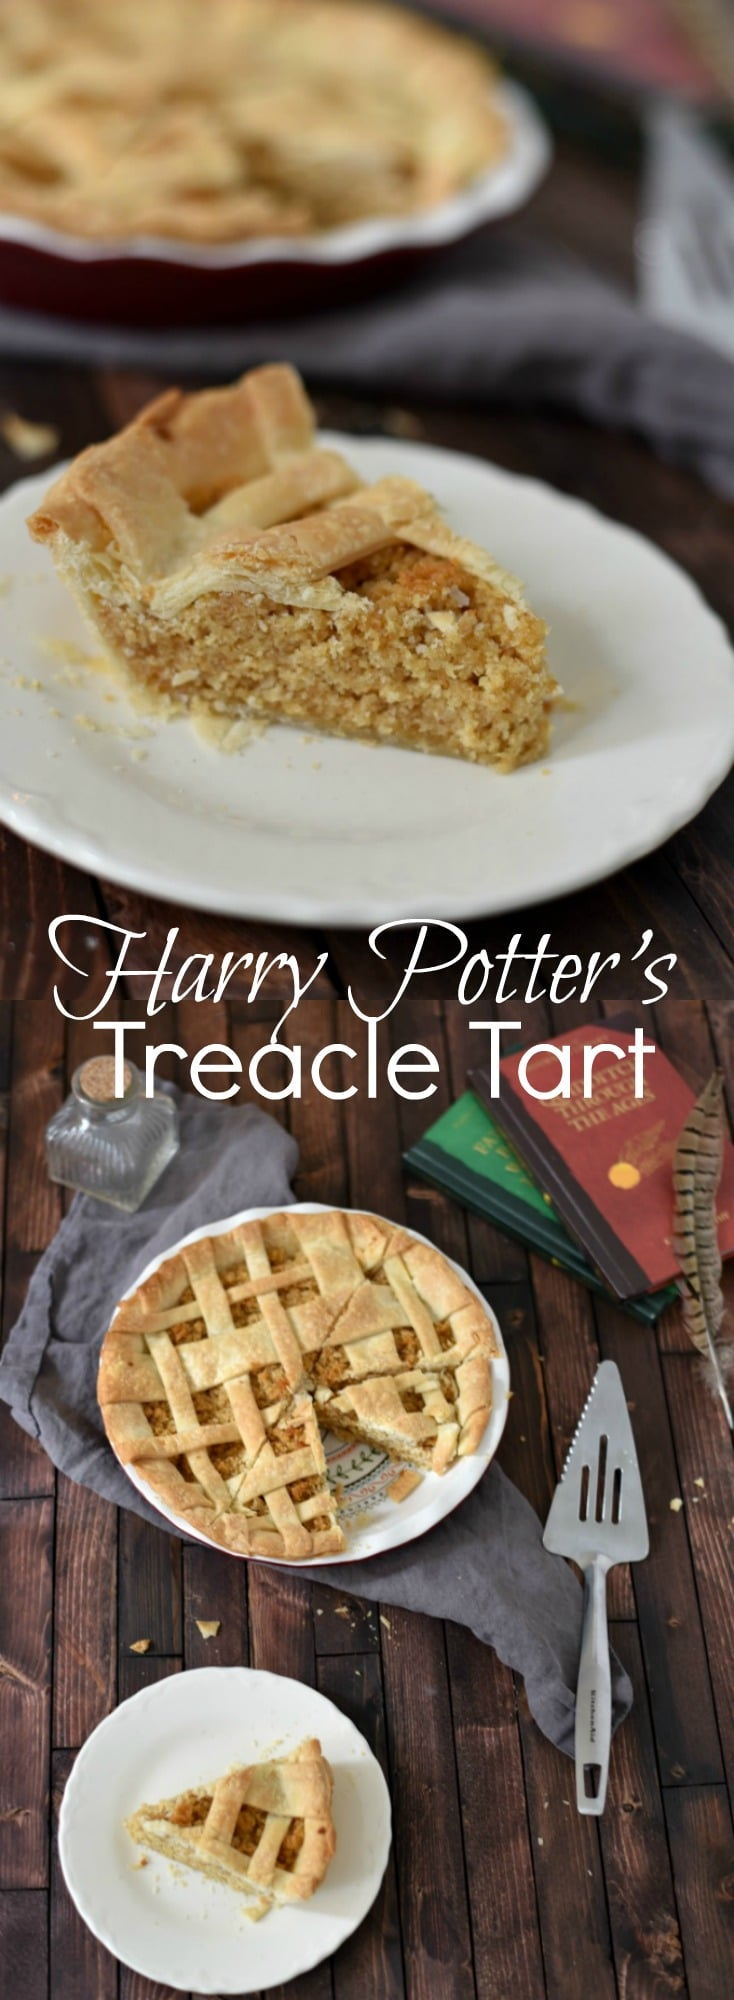 This easy Treacle Tart is a lovely dessert, and perfect for the Harry Potter fan! Just three ingredients needed for the filling! 